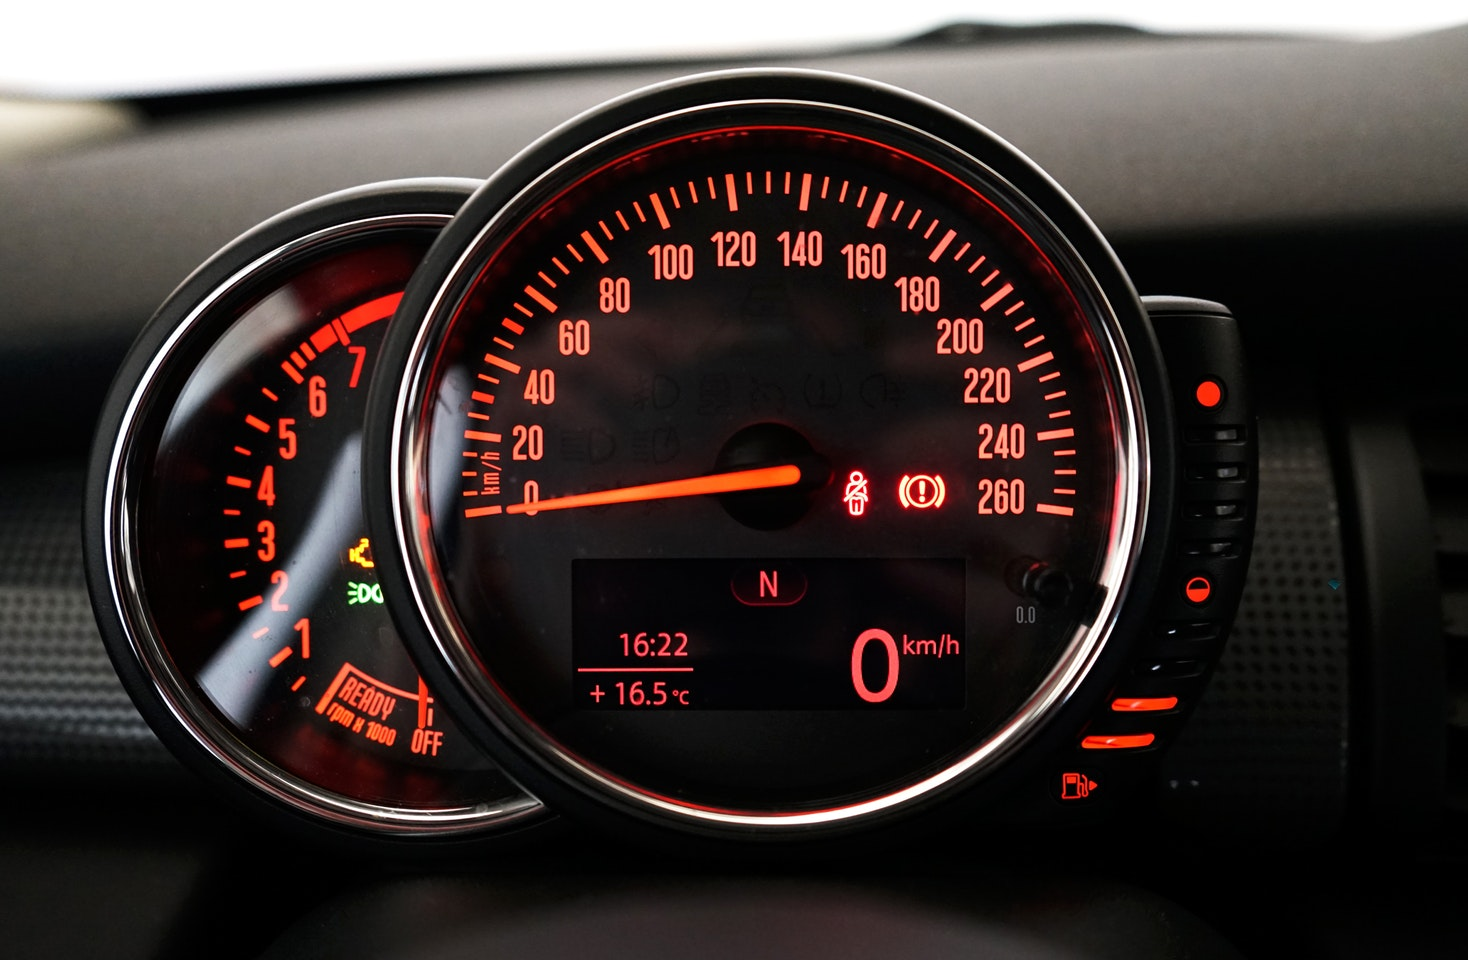 mycar-braine-lalleud-voitures-occasion-mini-cooper-one-first-19